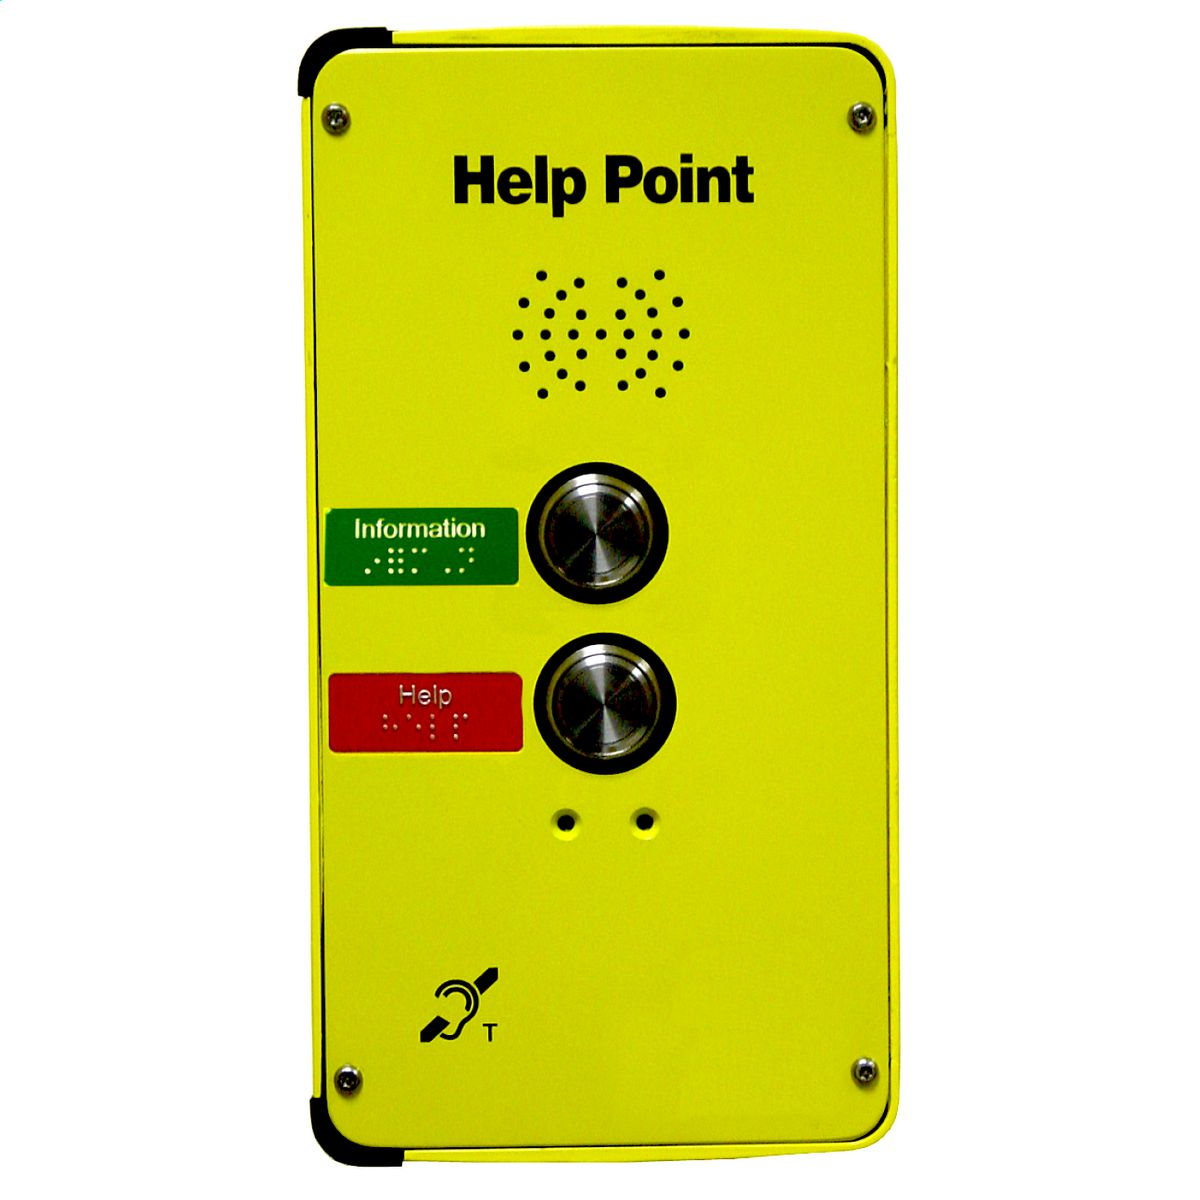 Remarkable Dda Help Point Gsm 2 Button Faceplate Only Brand Hubbell Wiring 101 Capemaxxcnl